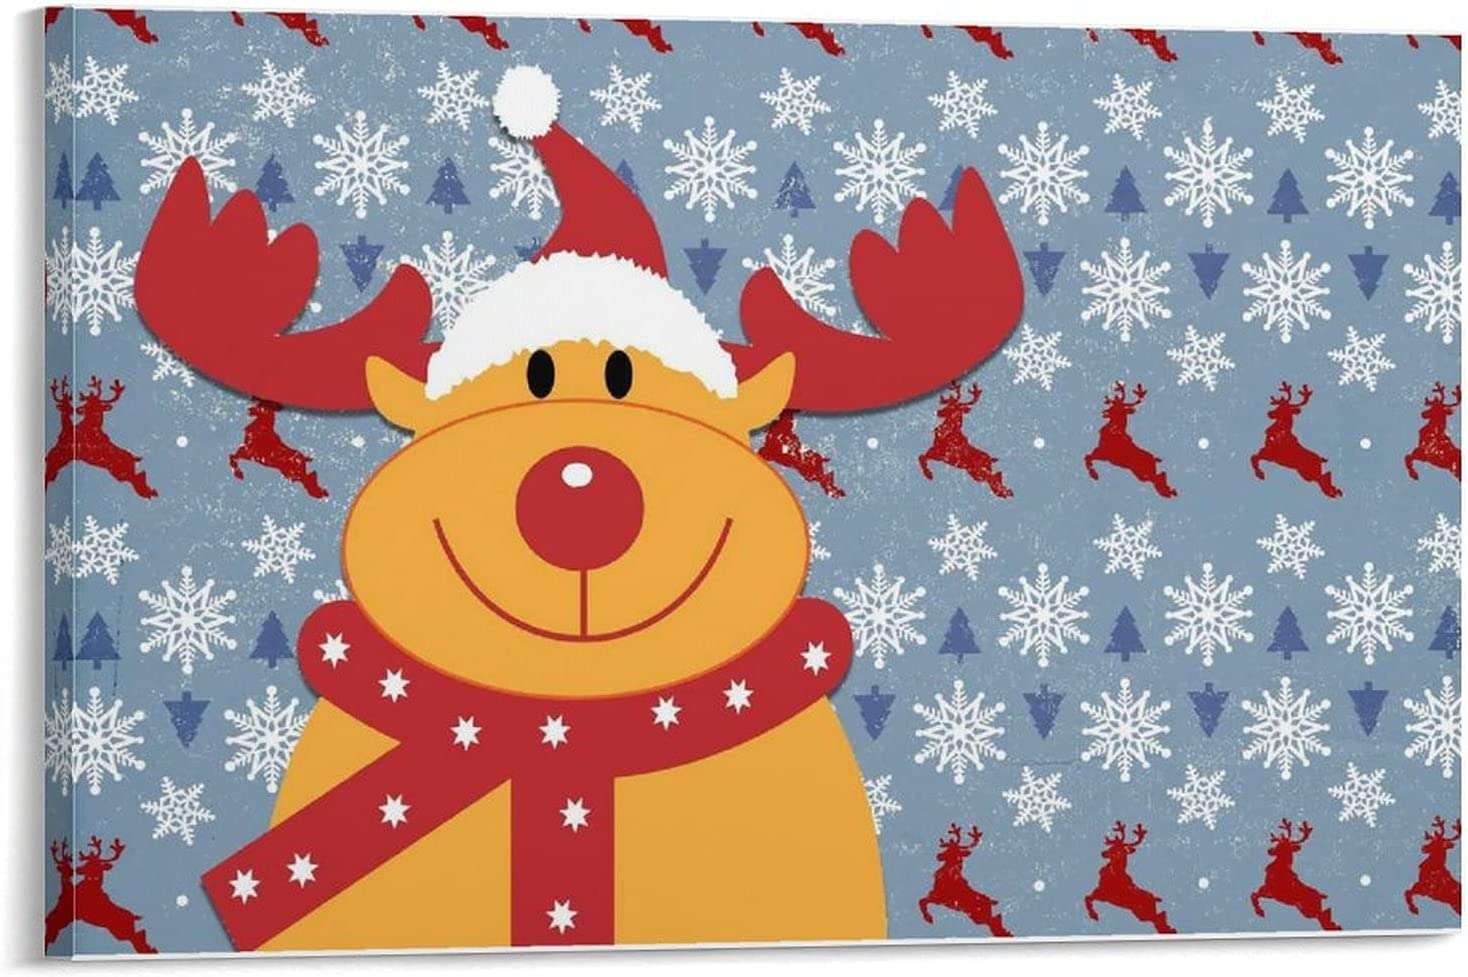 Wall Pictures Christmas Reindeer Made 20x30cm orde Same day shipping to 08x12inch Luxury